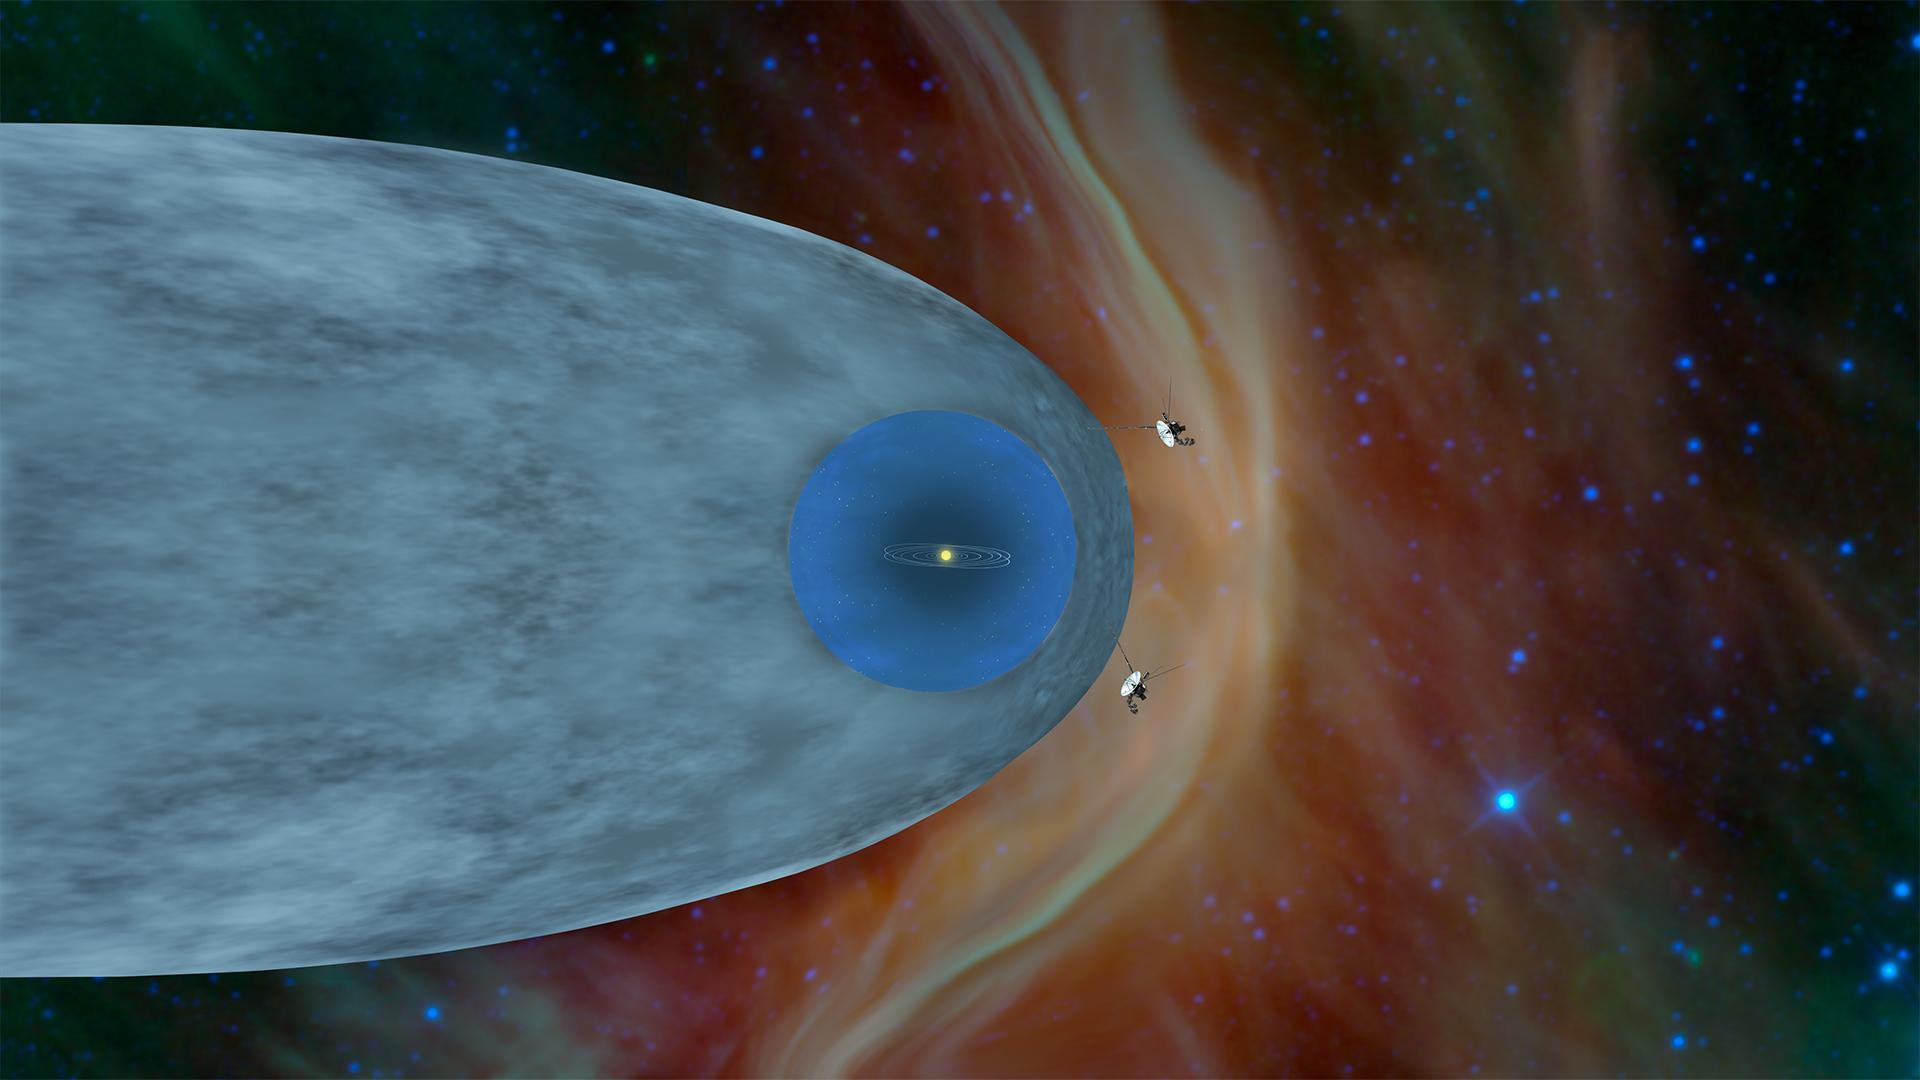 This graphic shows the position of NASAs Voyager 1 and Voyager 2 probes, outside of the heliosphere, a protective bubble created by the Sun that extends well past the orbit of Pluto.